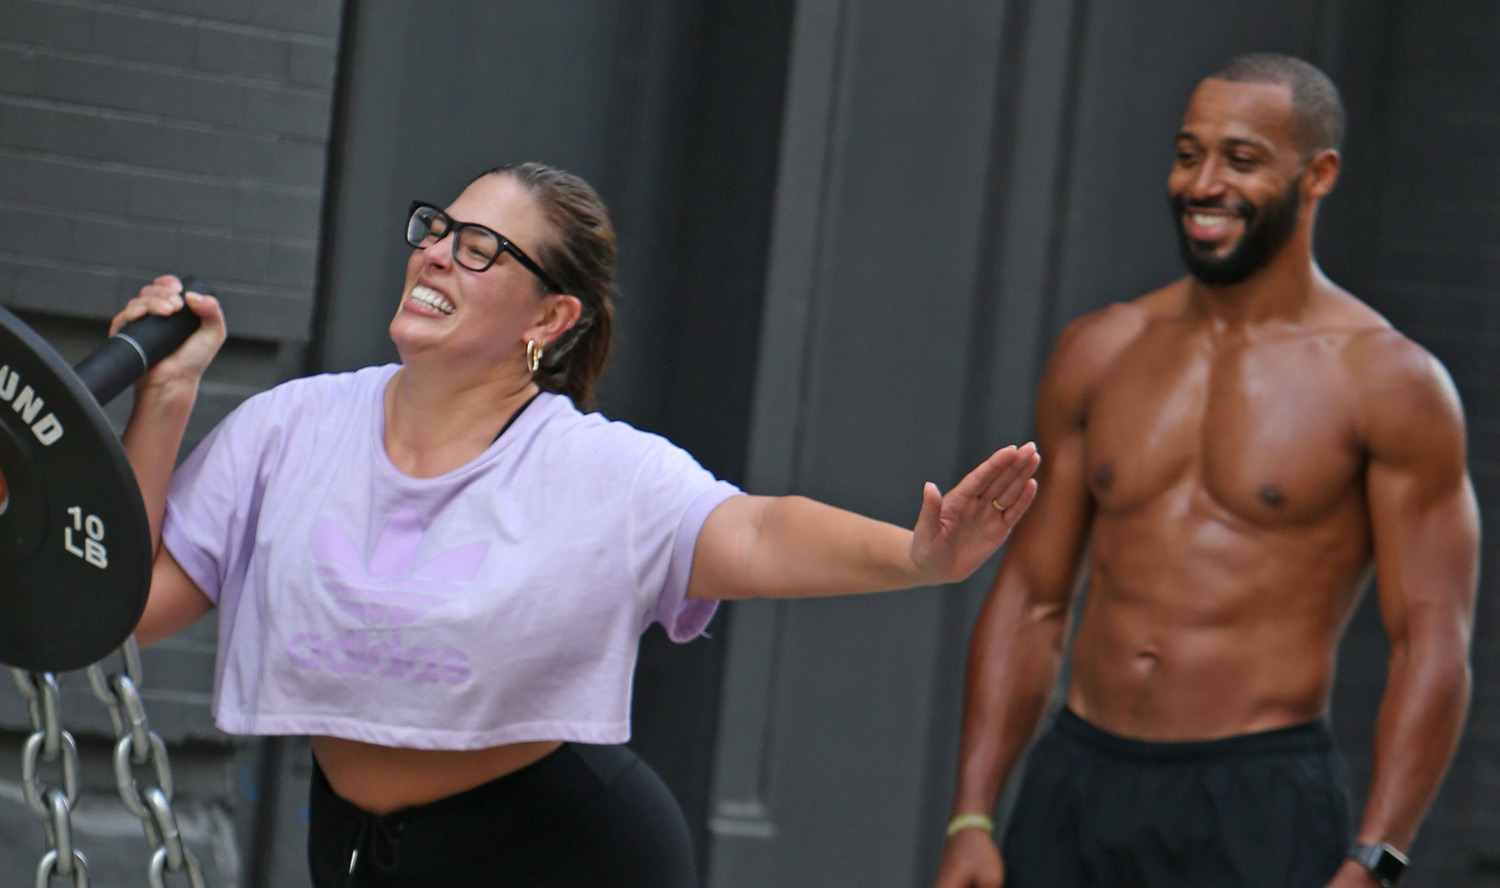 b51f50b3315ca Ashley Graham & Husband Justin Ervin Display Their Strength During an  Outdoor Workout! | Ashley Graham, Justin Ervin, Shirtless : Just Jared